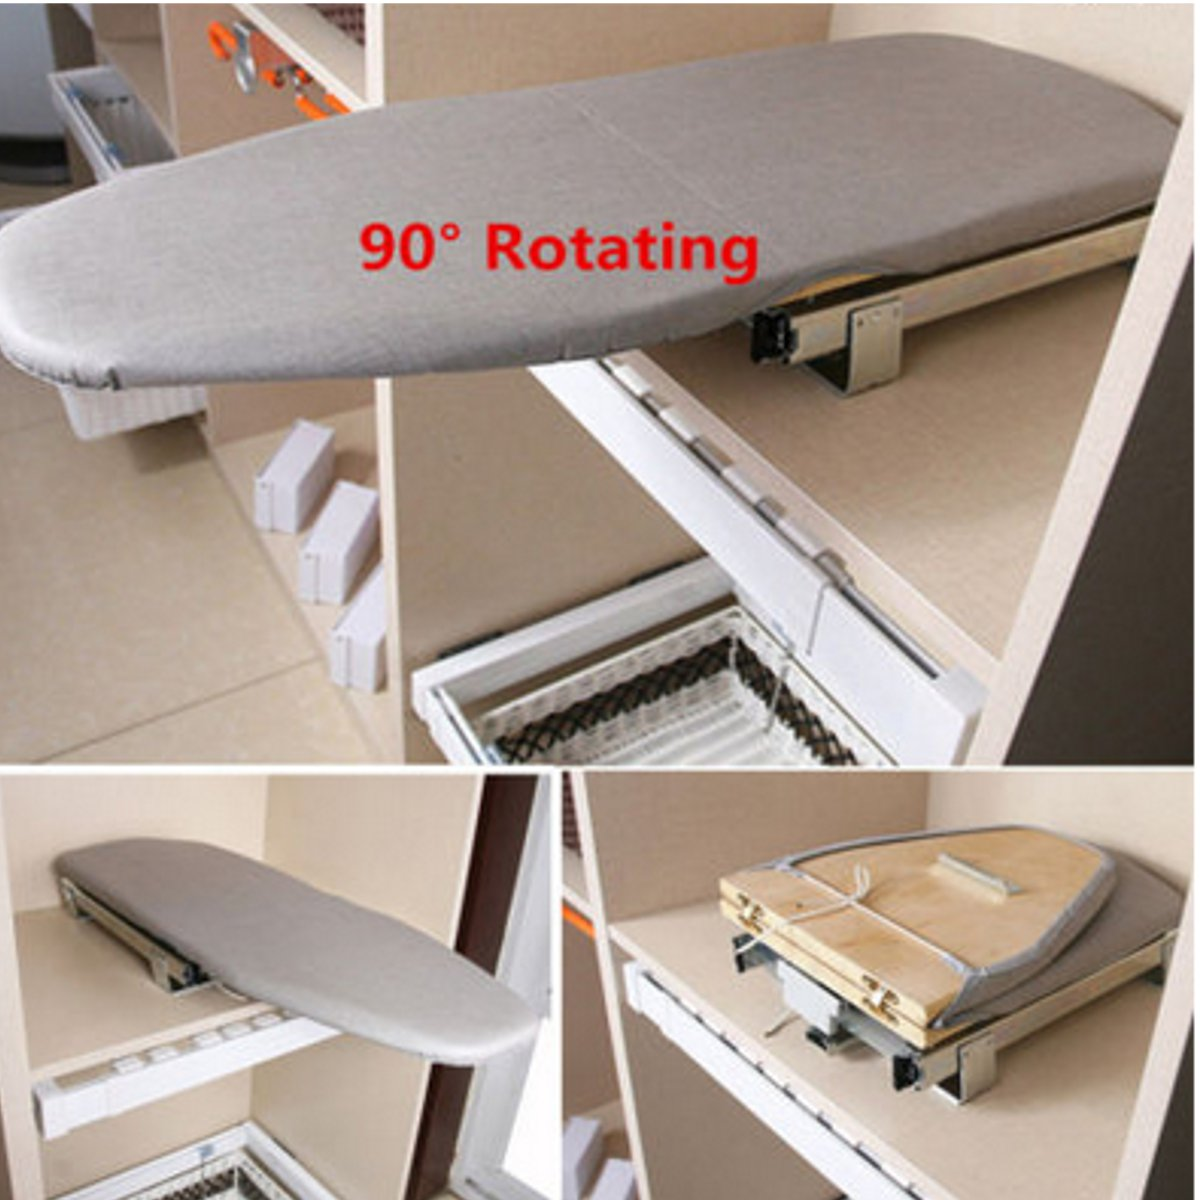 Folding Ironing Board Pull Out Slide Out Rotary Drawer Mounted Ironing Board